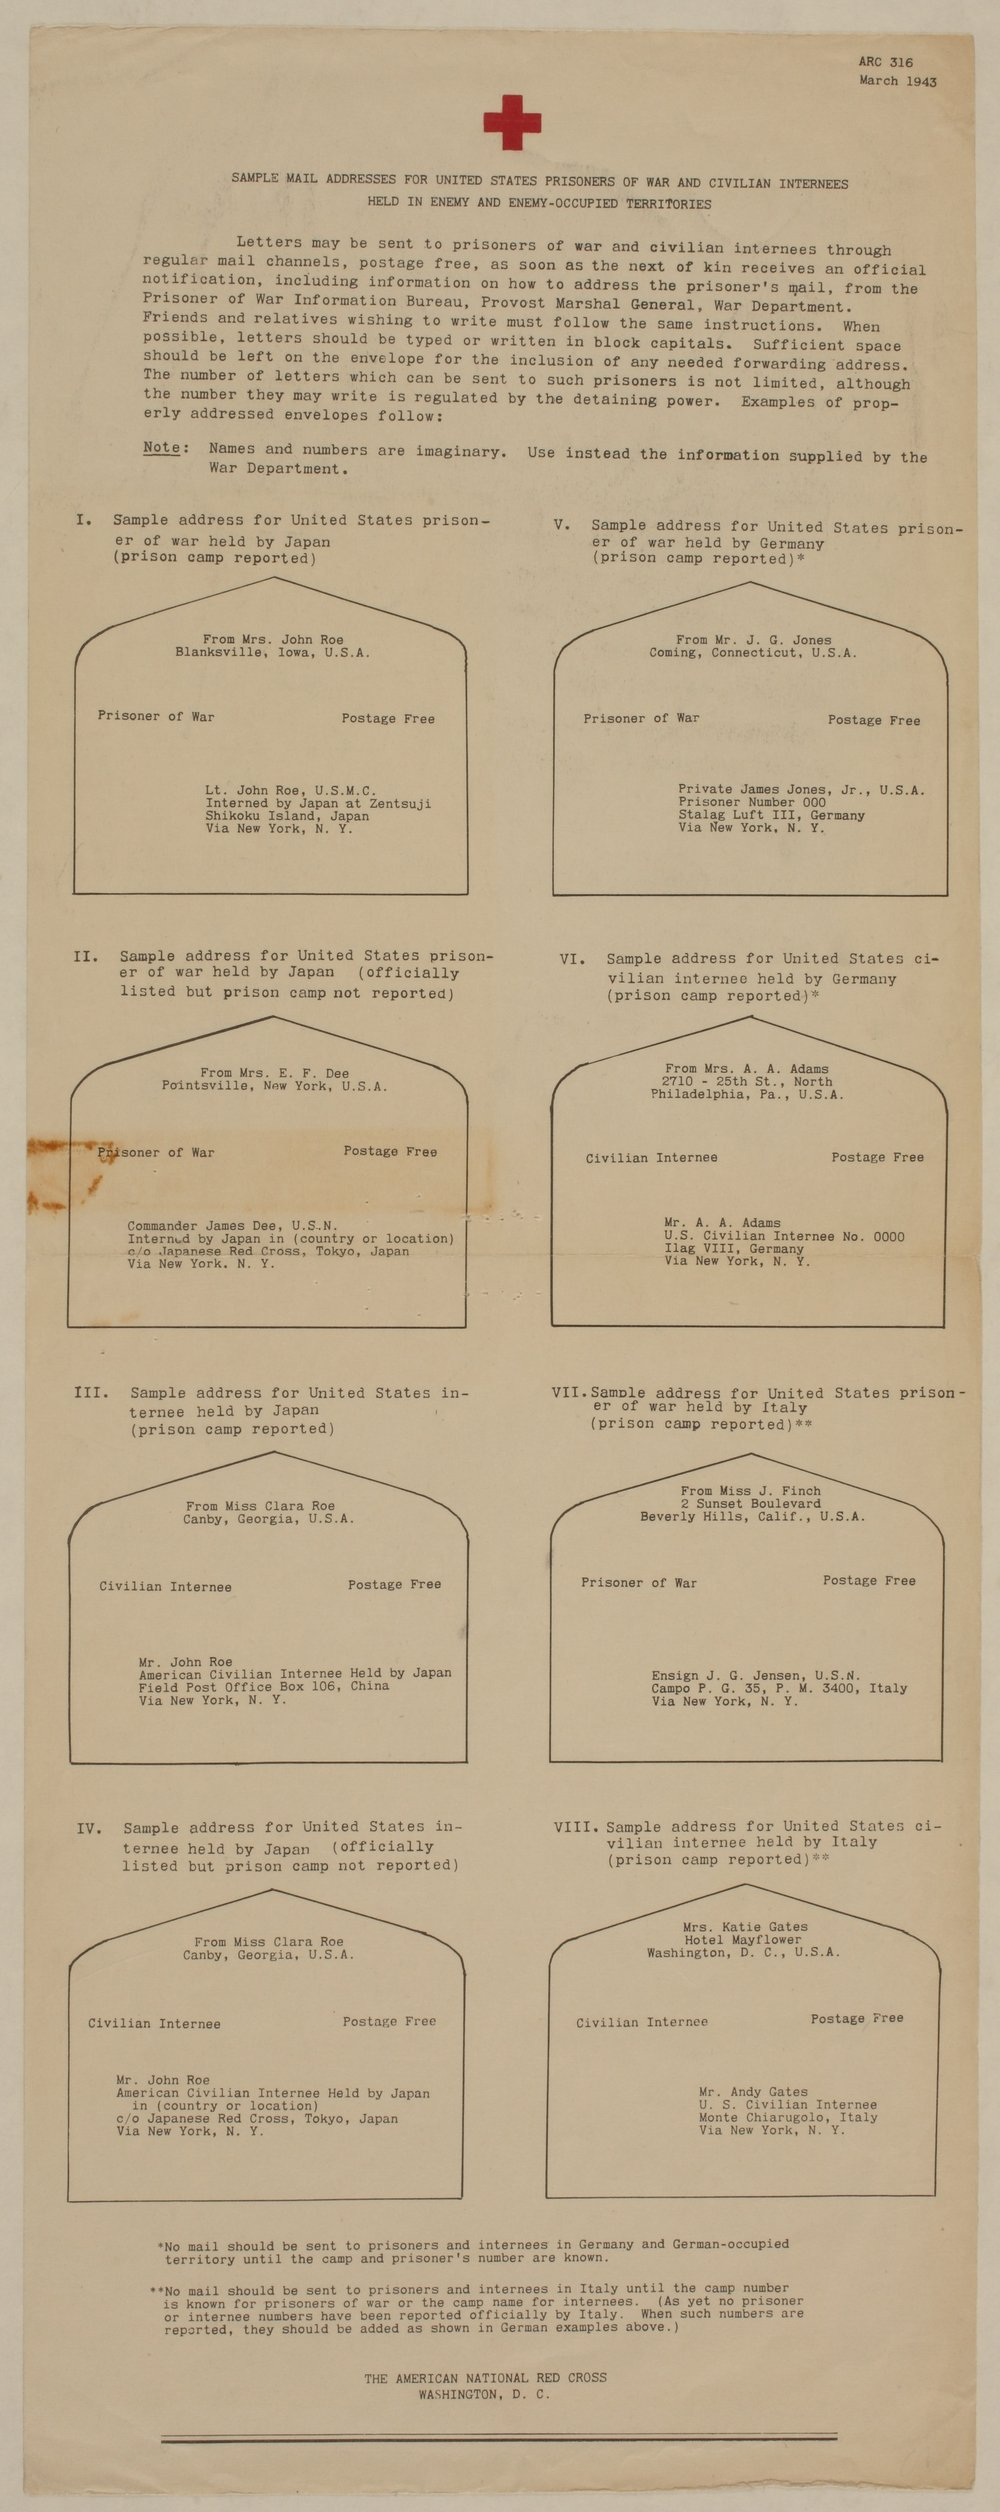 Sample Addresses for United States Prisoners of War and Civilian Internees Held in Enemy and Enemy-Occupied Territories